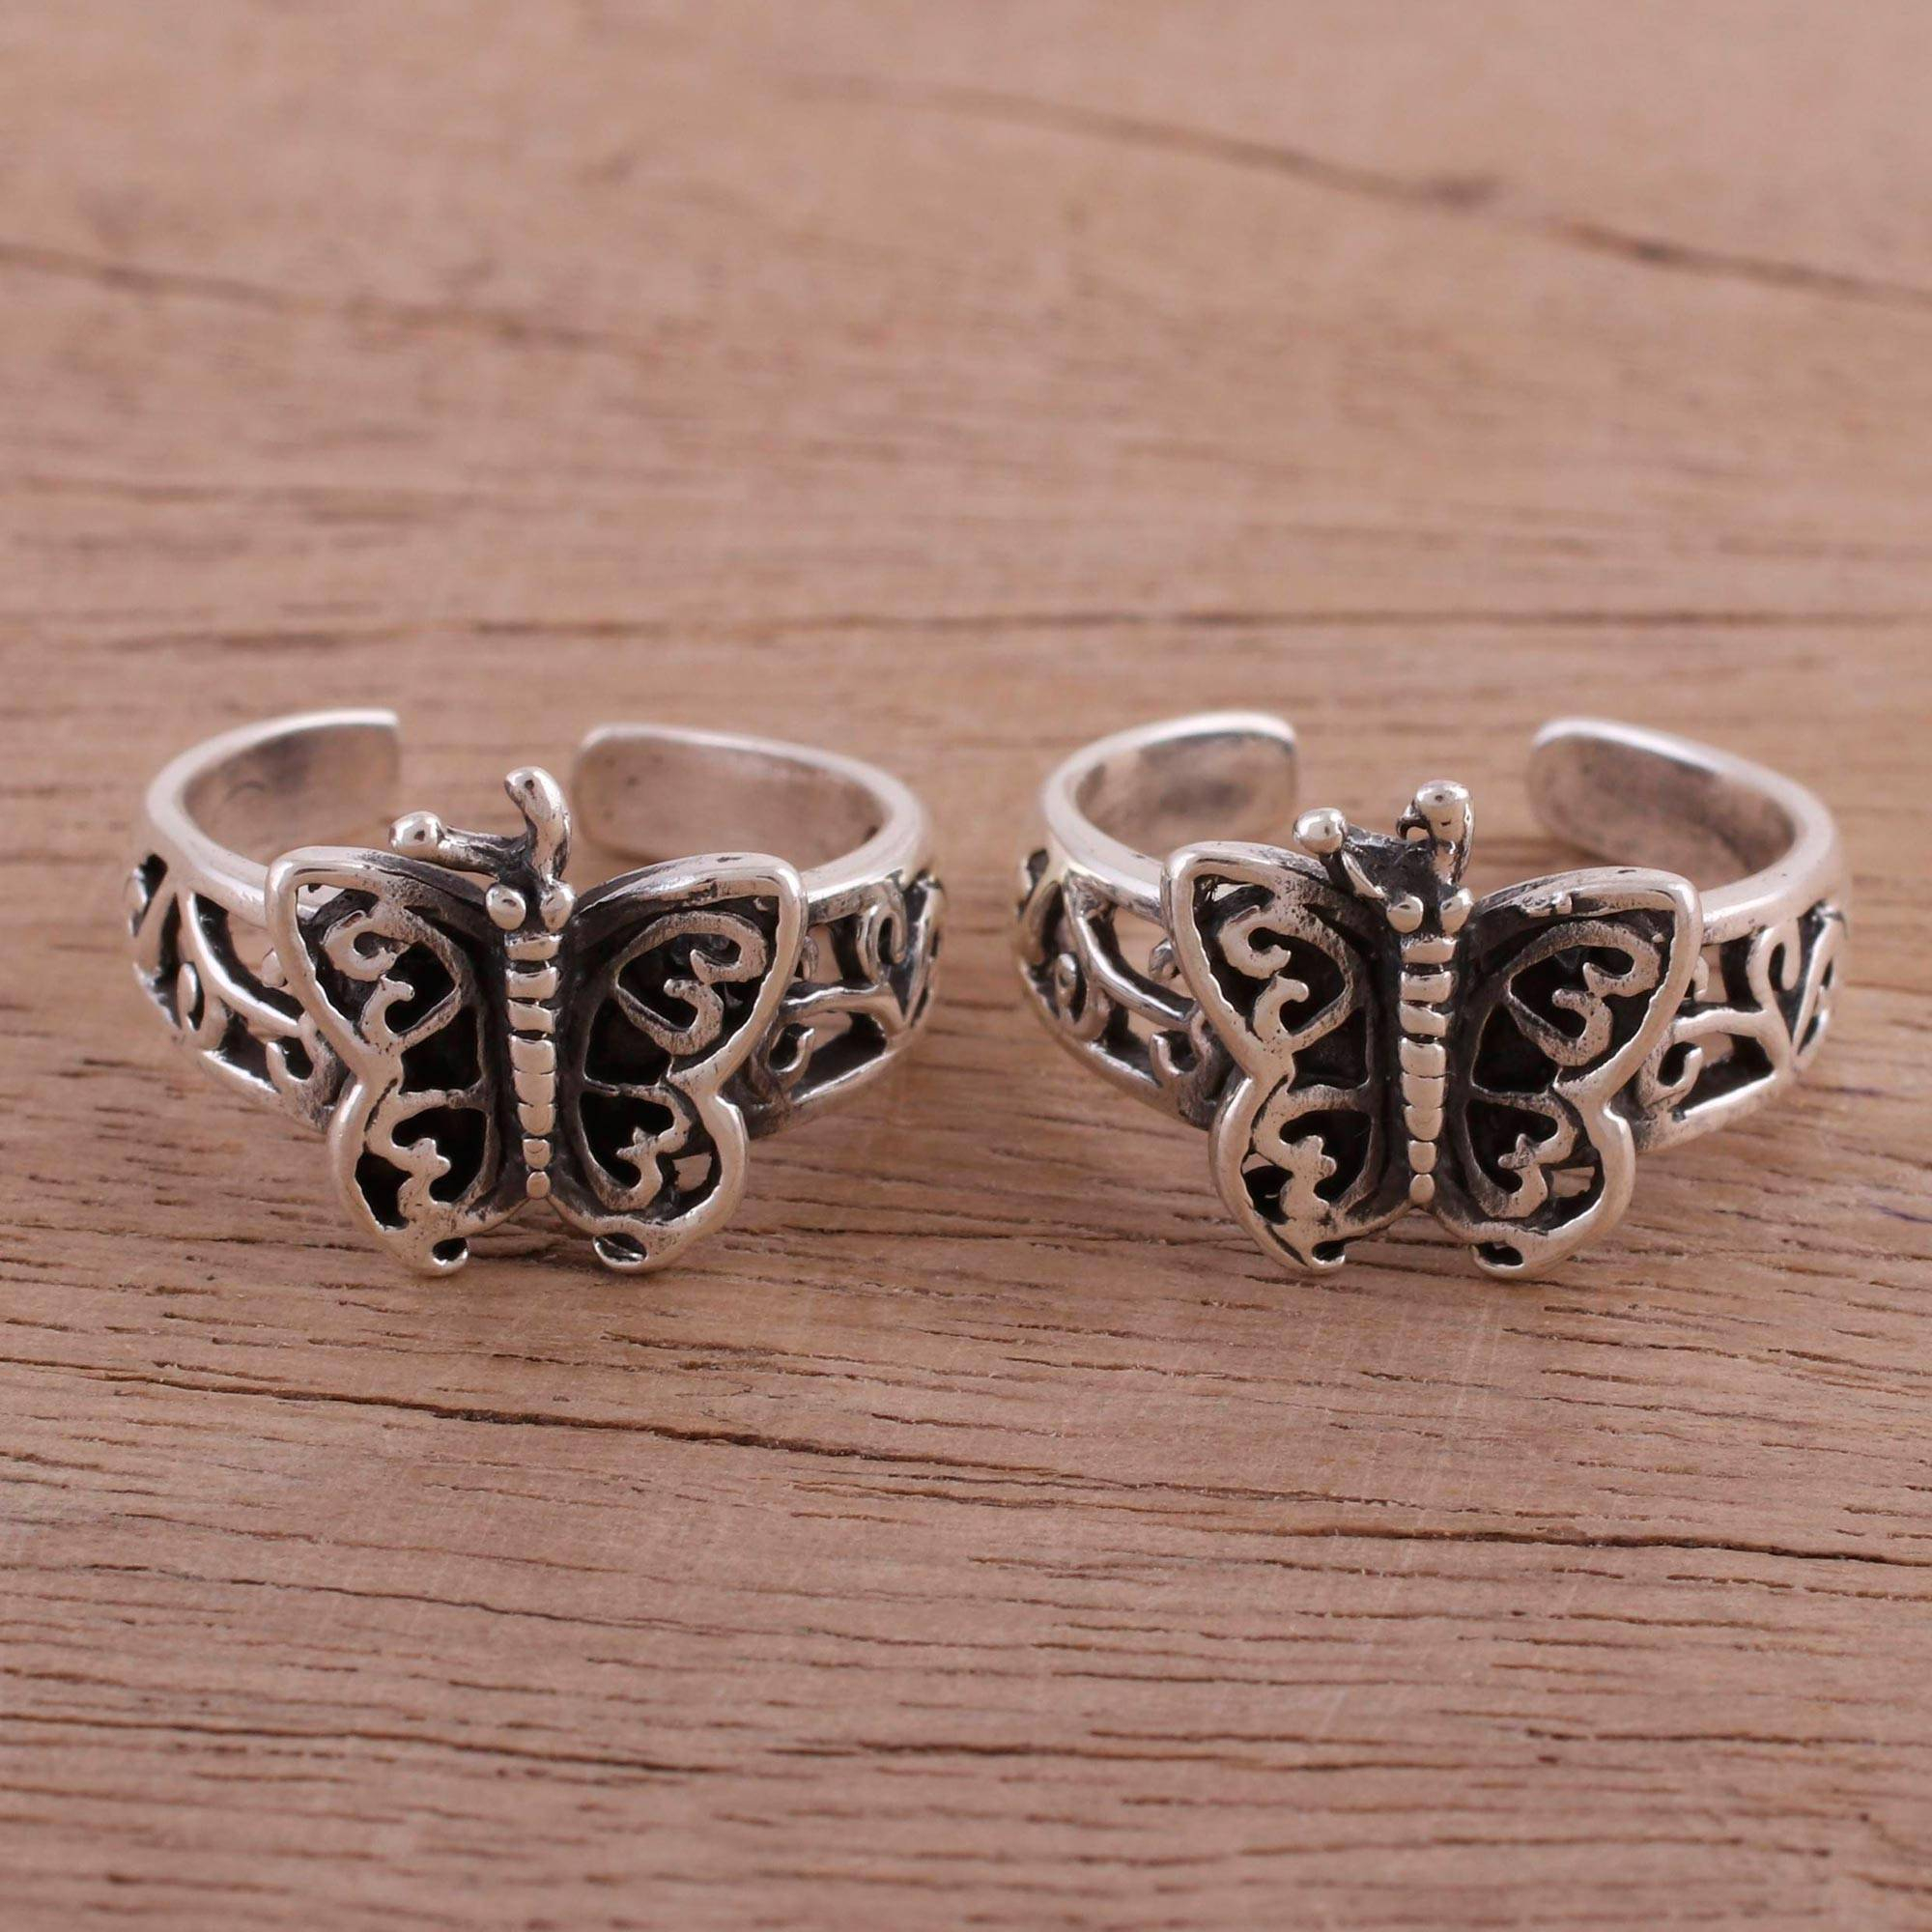 Butterfly Openwork Sterling Silver Toe Rings (pair), 'butterfly Twins' With Regard To Newest Openwork Butterfly Rings (View 8 of 25)